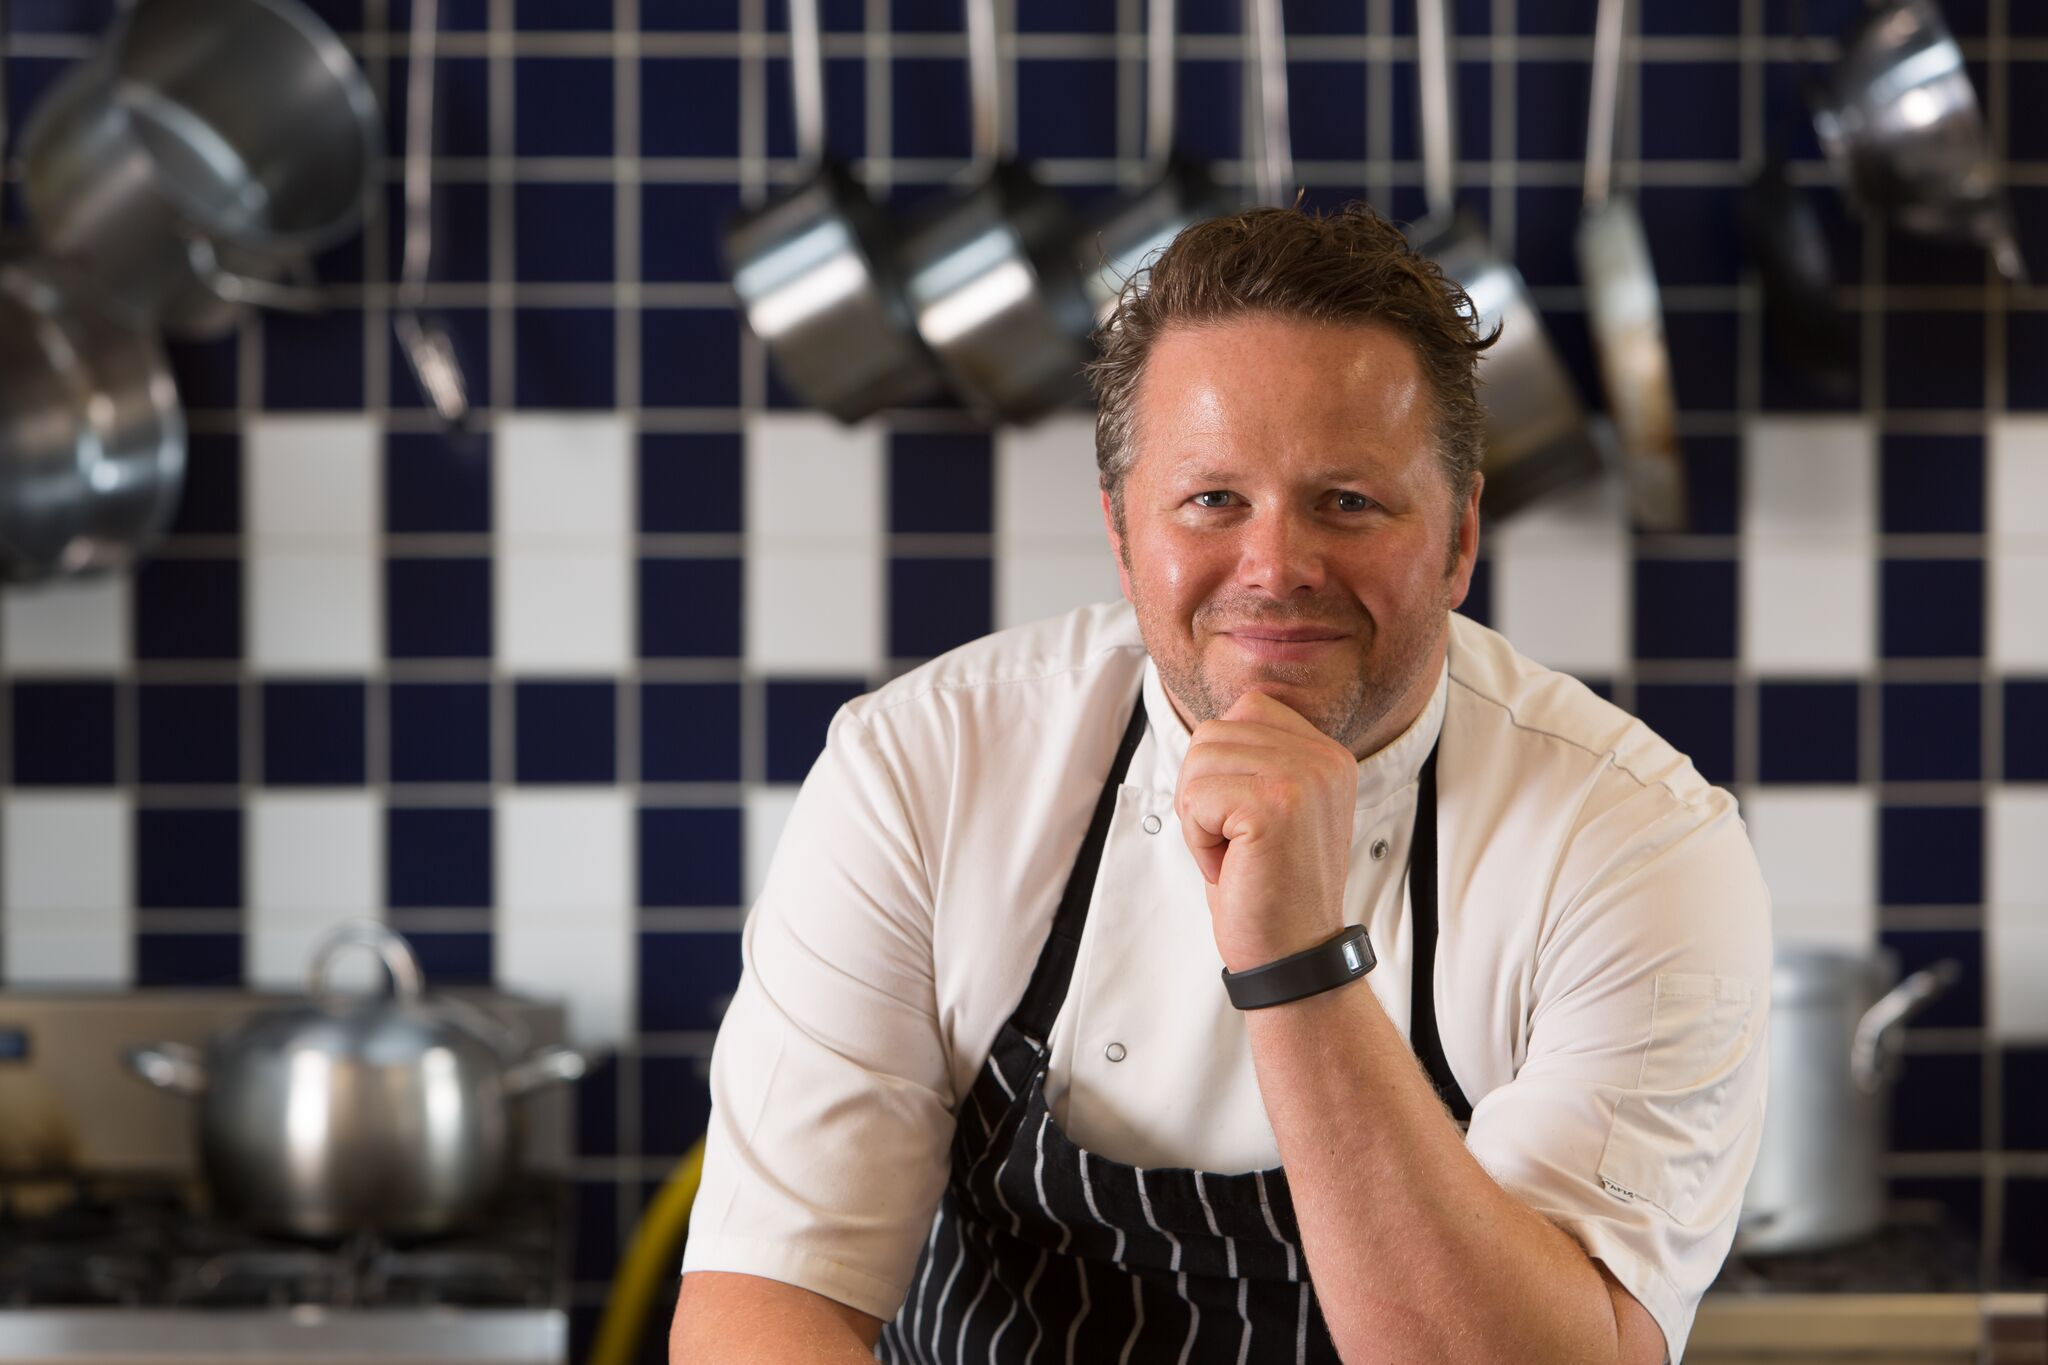 Chef Chris Eden will cook at Porthleven Food Festival 2019